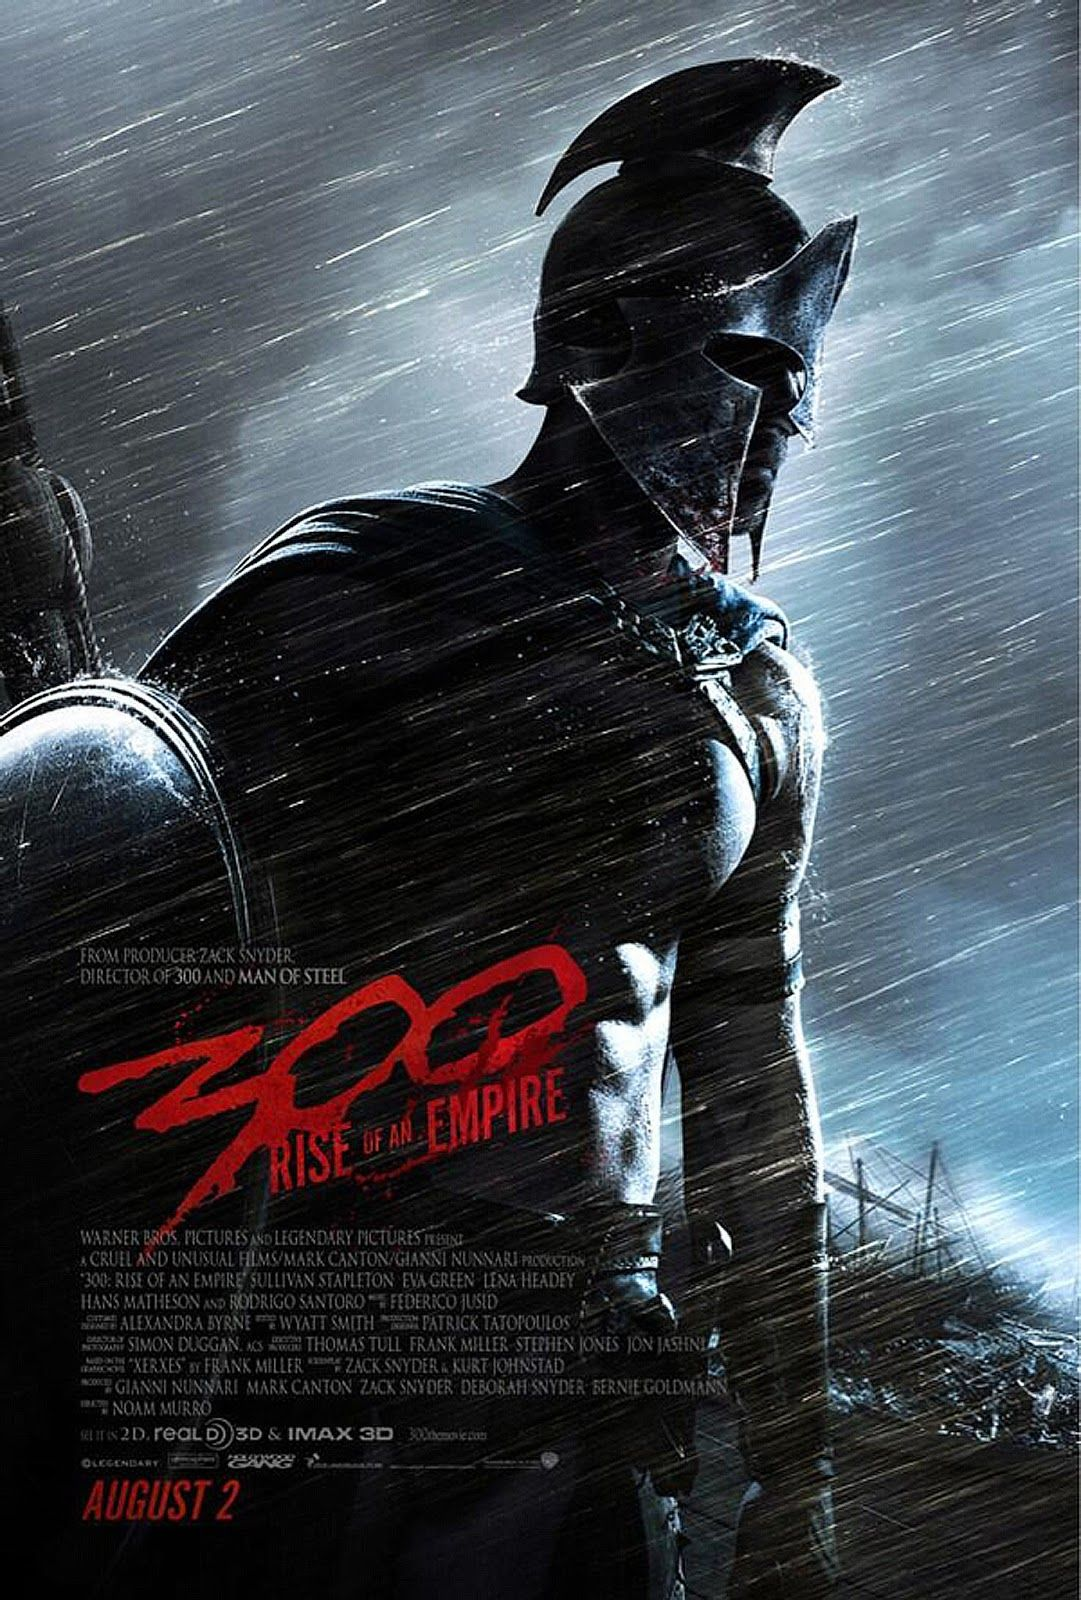 300 Rise Of An Empire Release Date March 7 2014 Usa Carteleras De Cine Peliculas Cine Peliculas